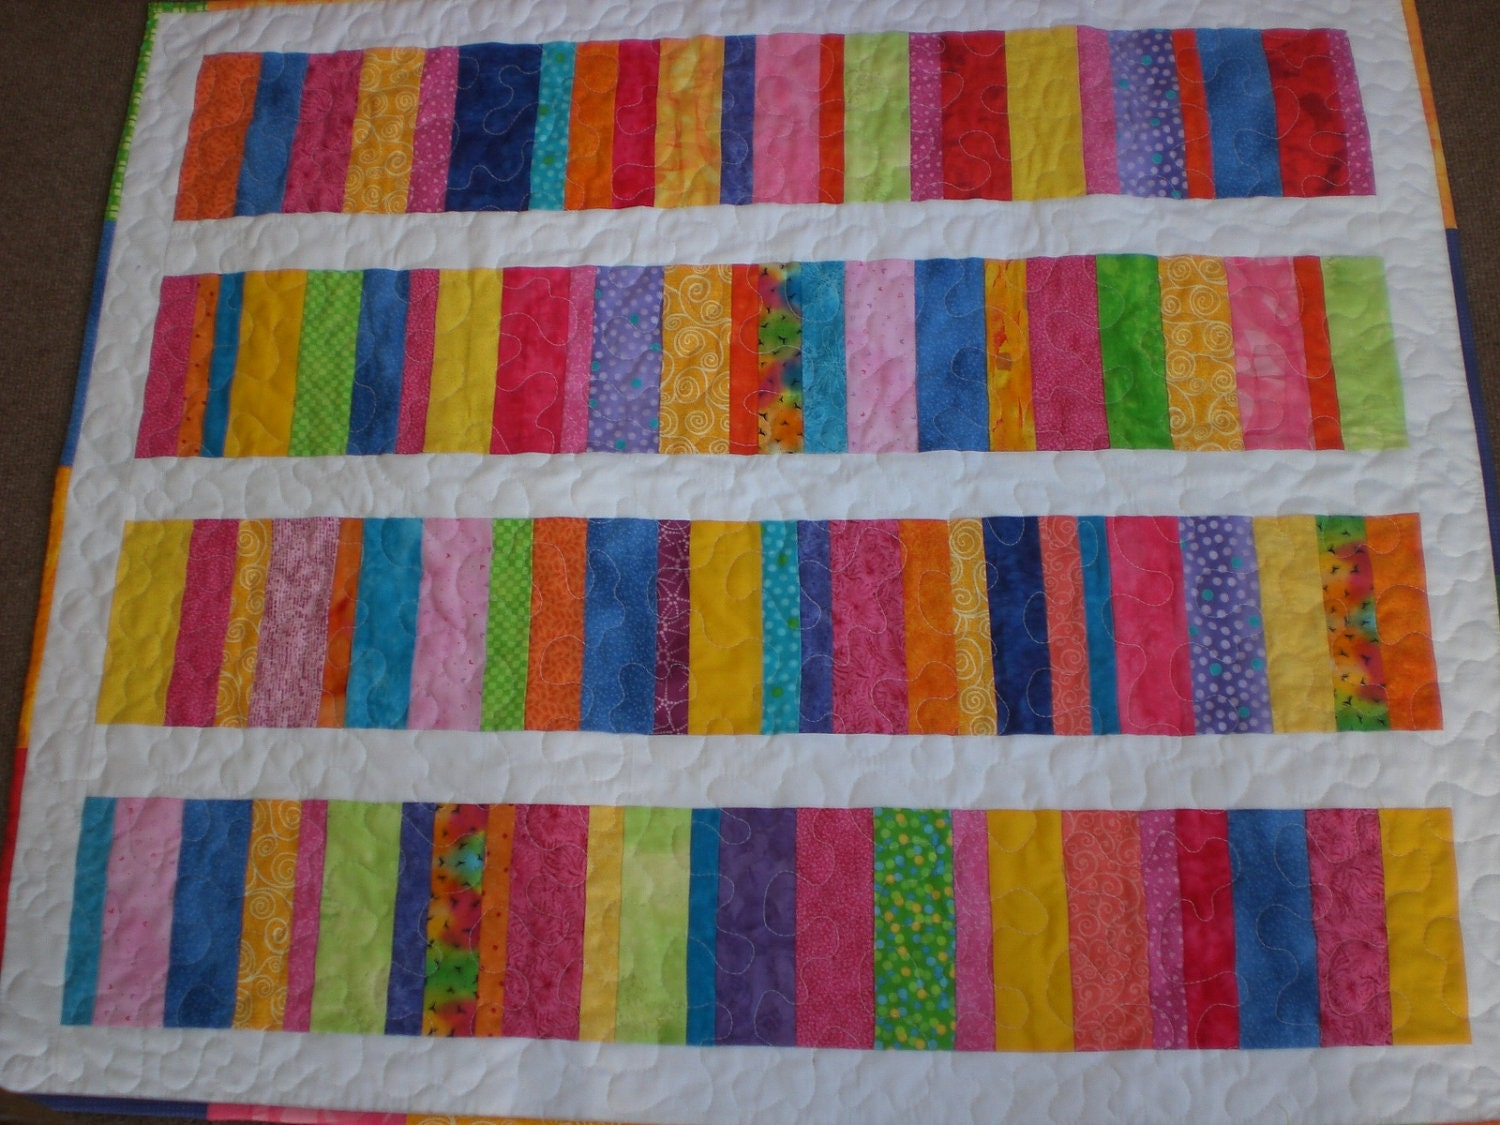 Baby quilt Stacked Coins in bright colors - photo#30